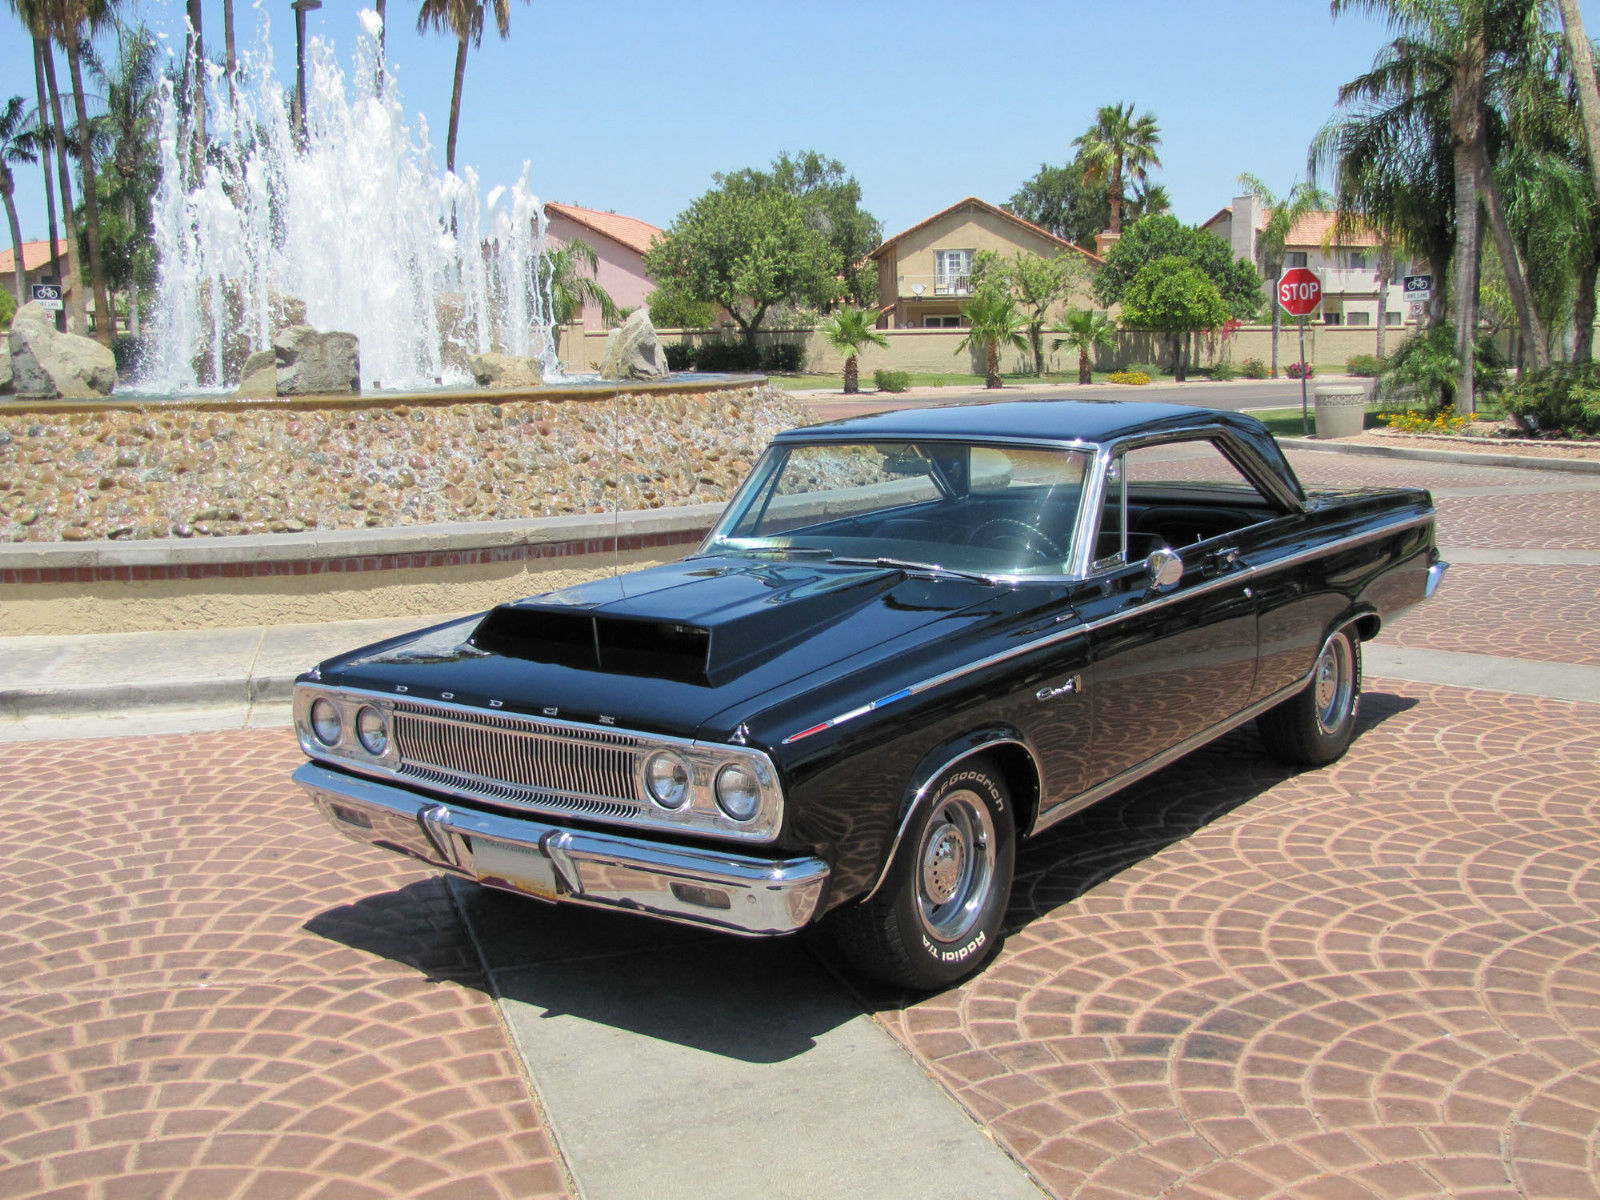 1965 Dodge Coronet 500 Two Door Coupe Max Wedge 426 Ci